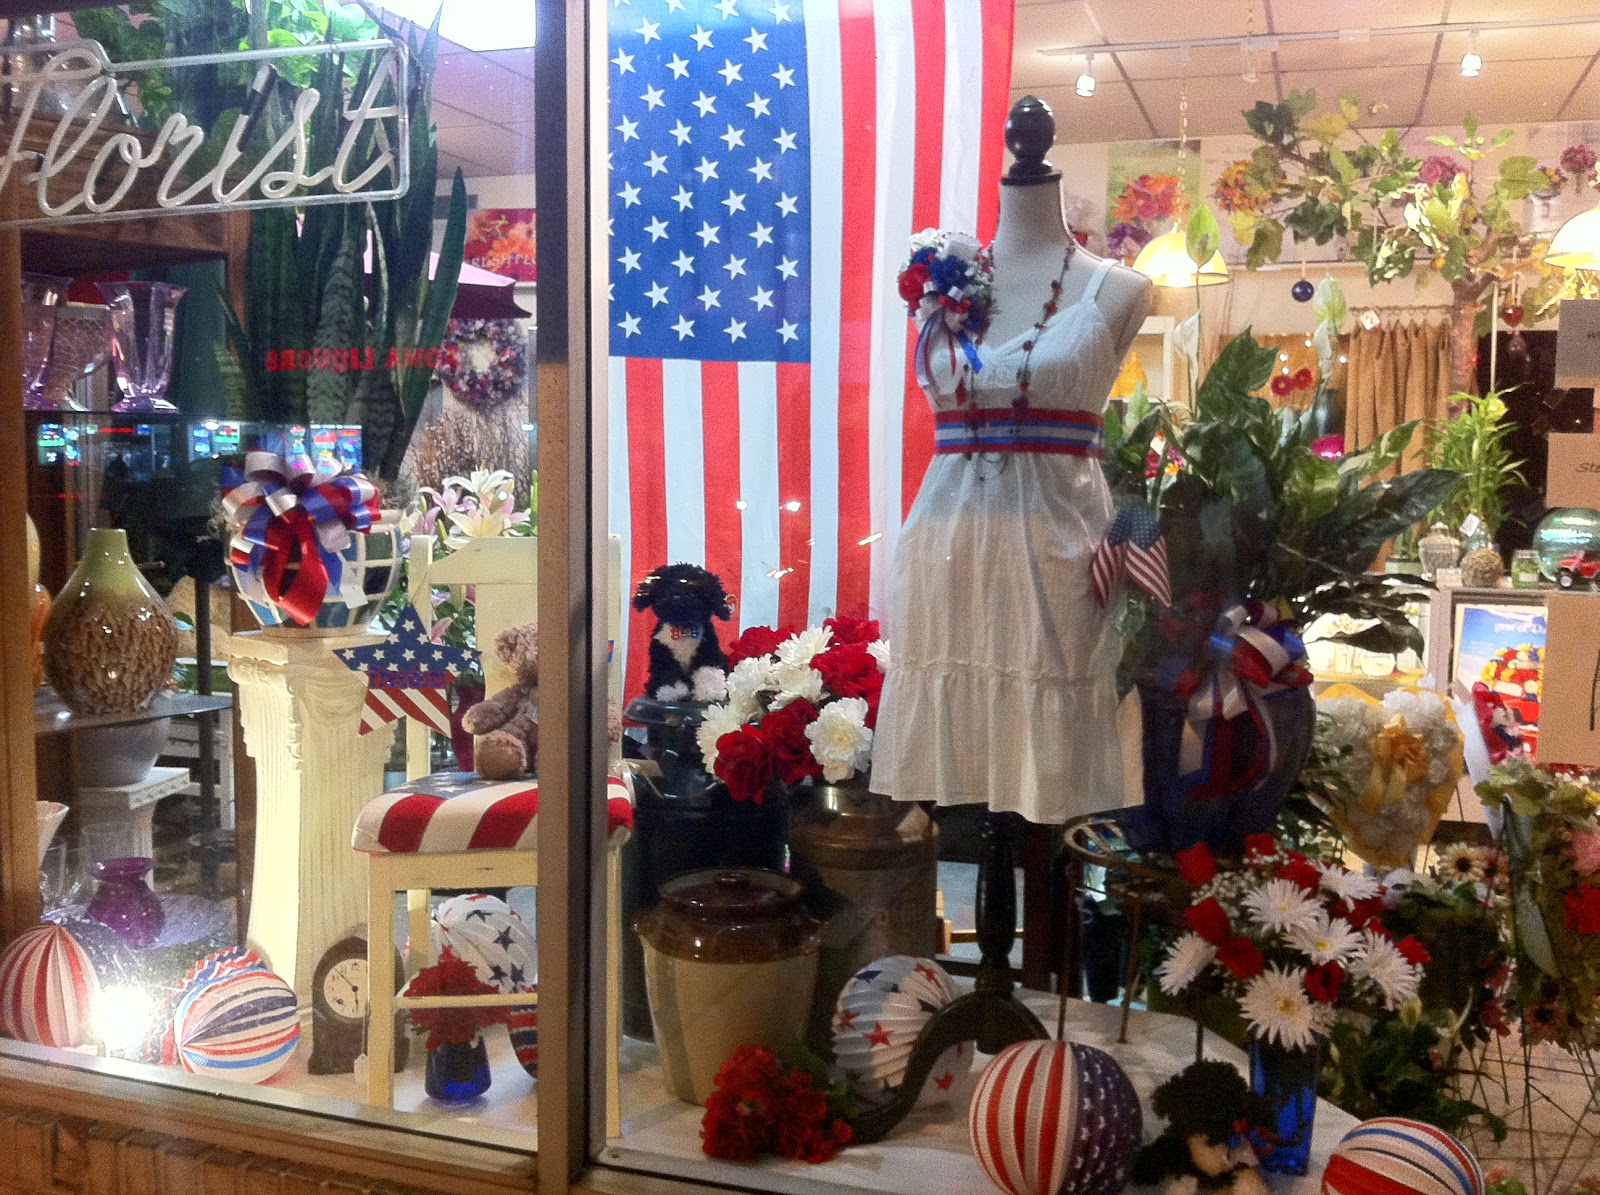 This florist chooses a patriotic 4th july window display composition for its flower shop.